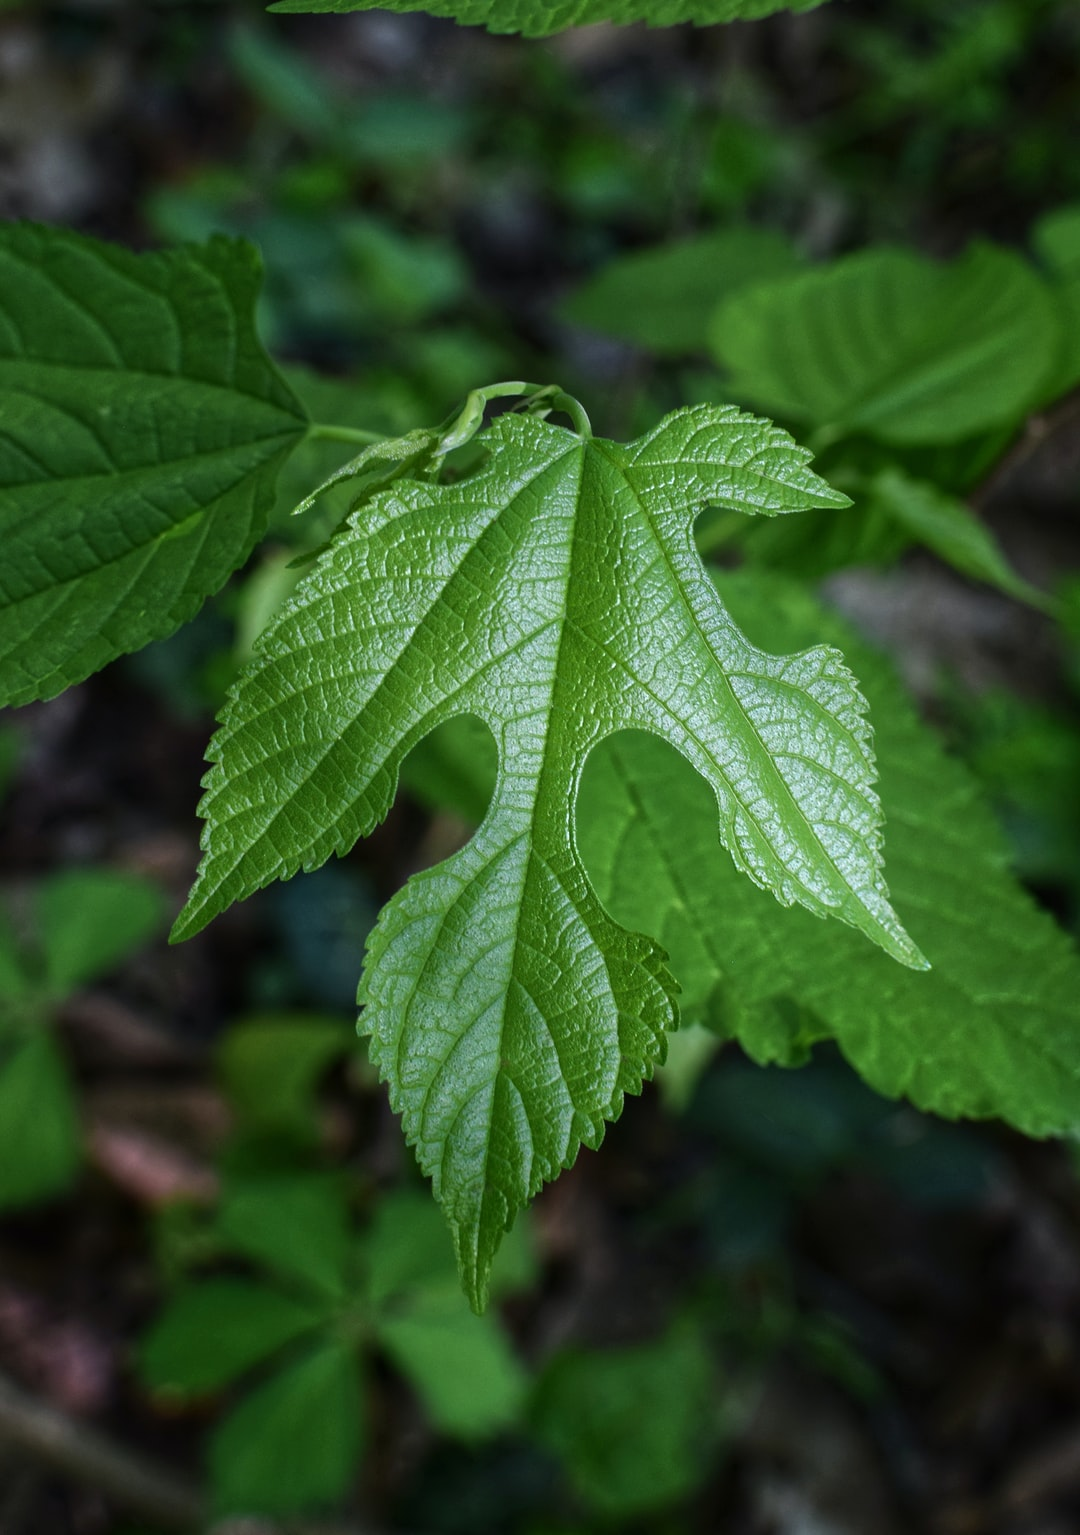 This is a sassafras leaf ... the leaf shape is variable and you will see several different ones on a single plant. Sassafras is medicinal and its root is the essential ingredient in both teas and root beer. The morning sun really brought out the texture of the leaf!